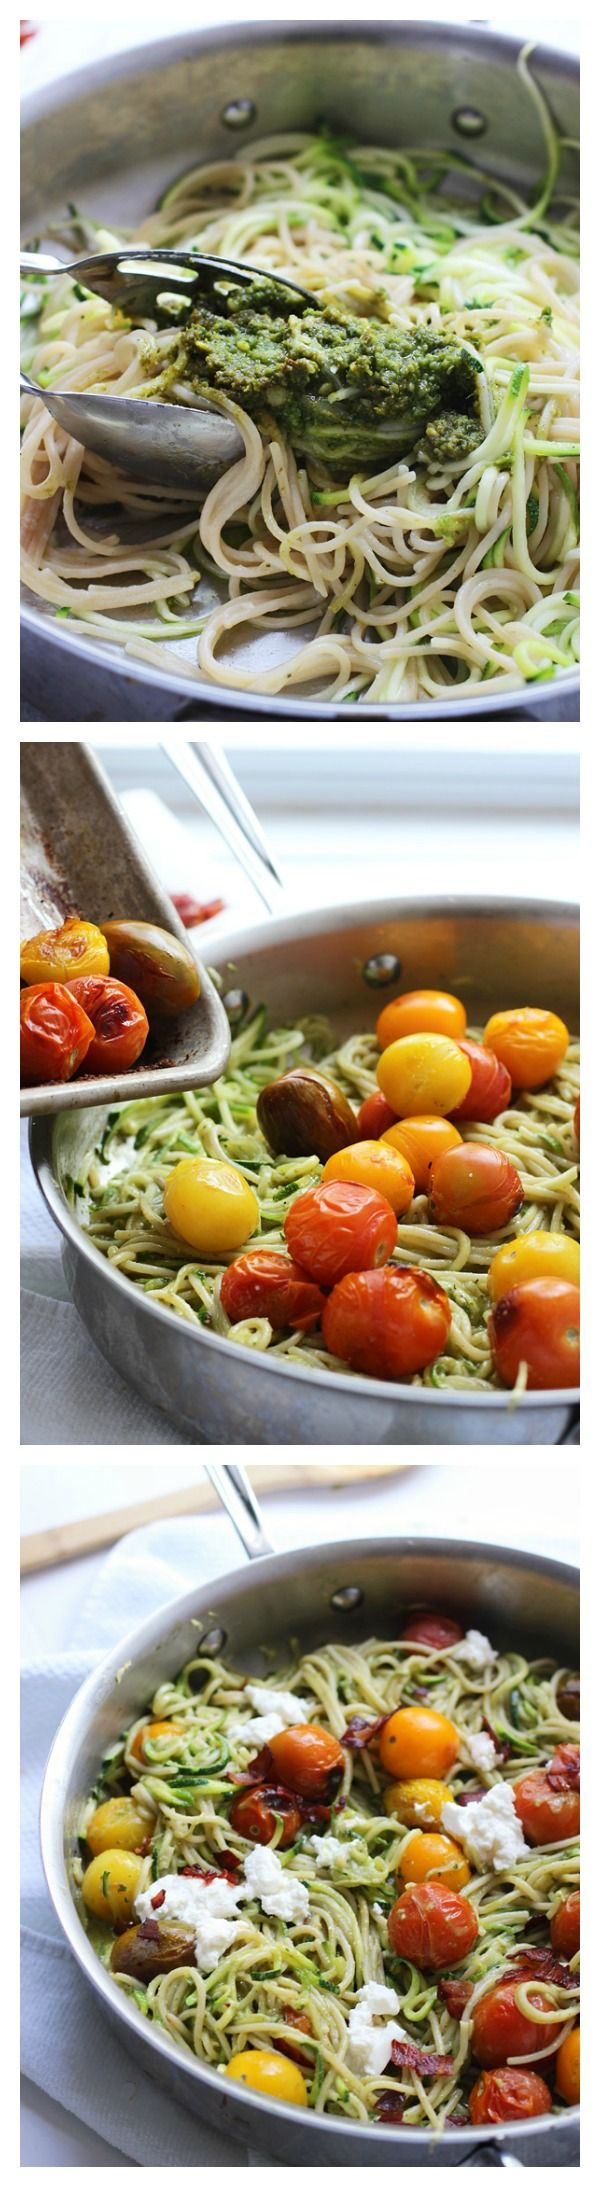 Whole-Wheat and Zucchini Spaghetti with Basil Almond Pesto, Blistered Tomatoes and Ricotta ~ Healthy, hearty and SO delicious!